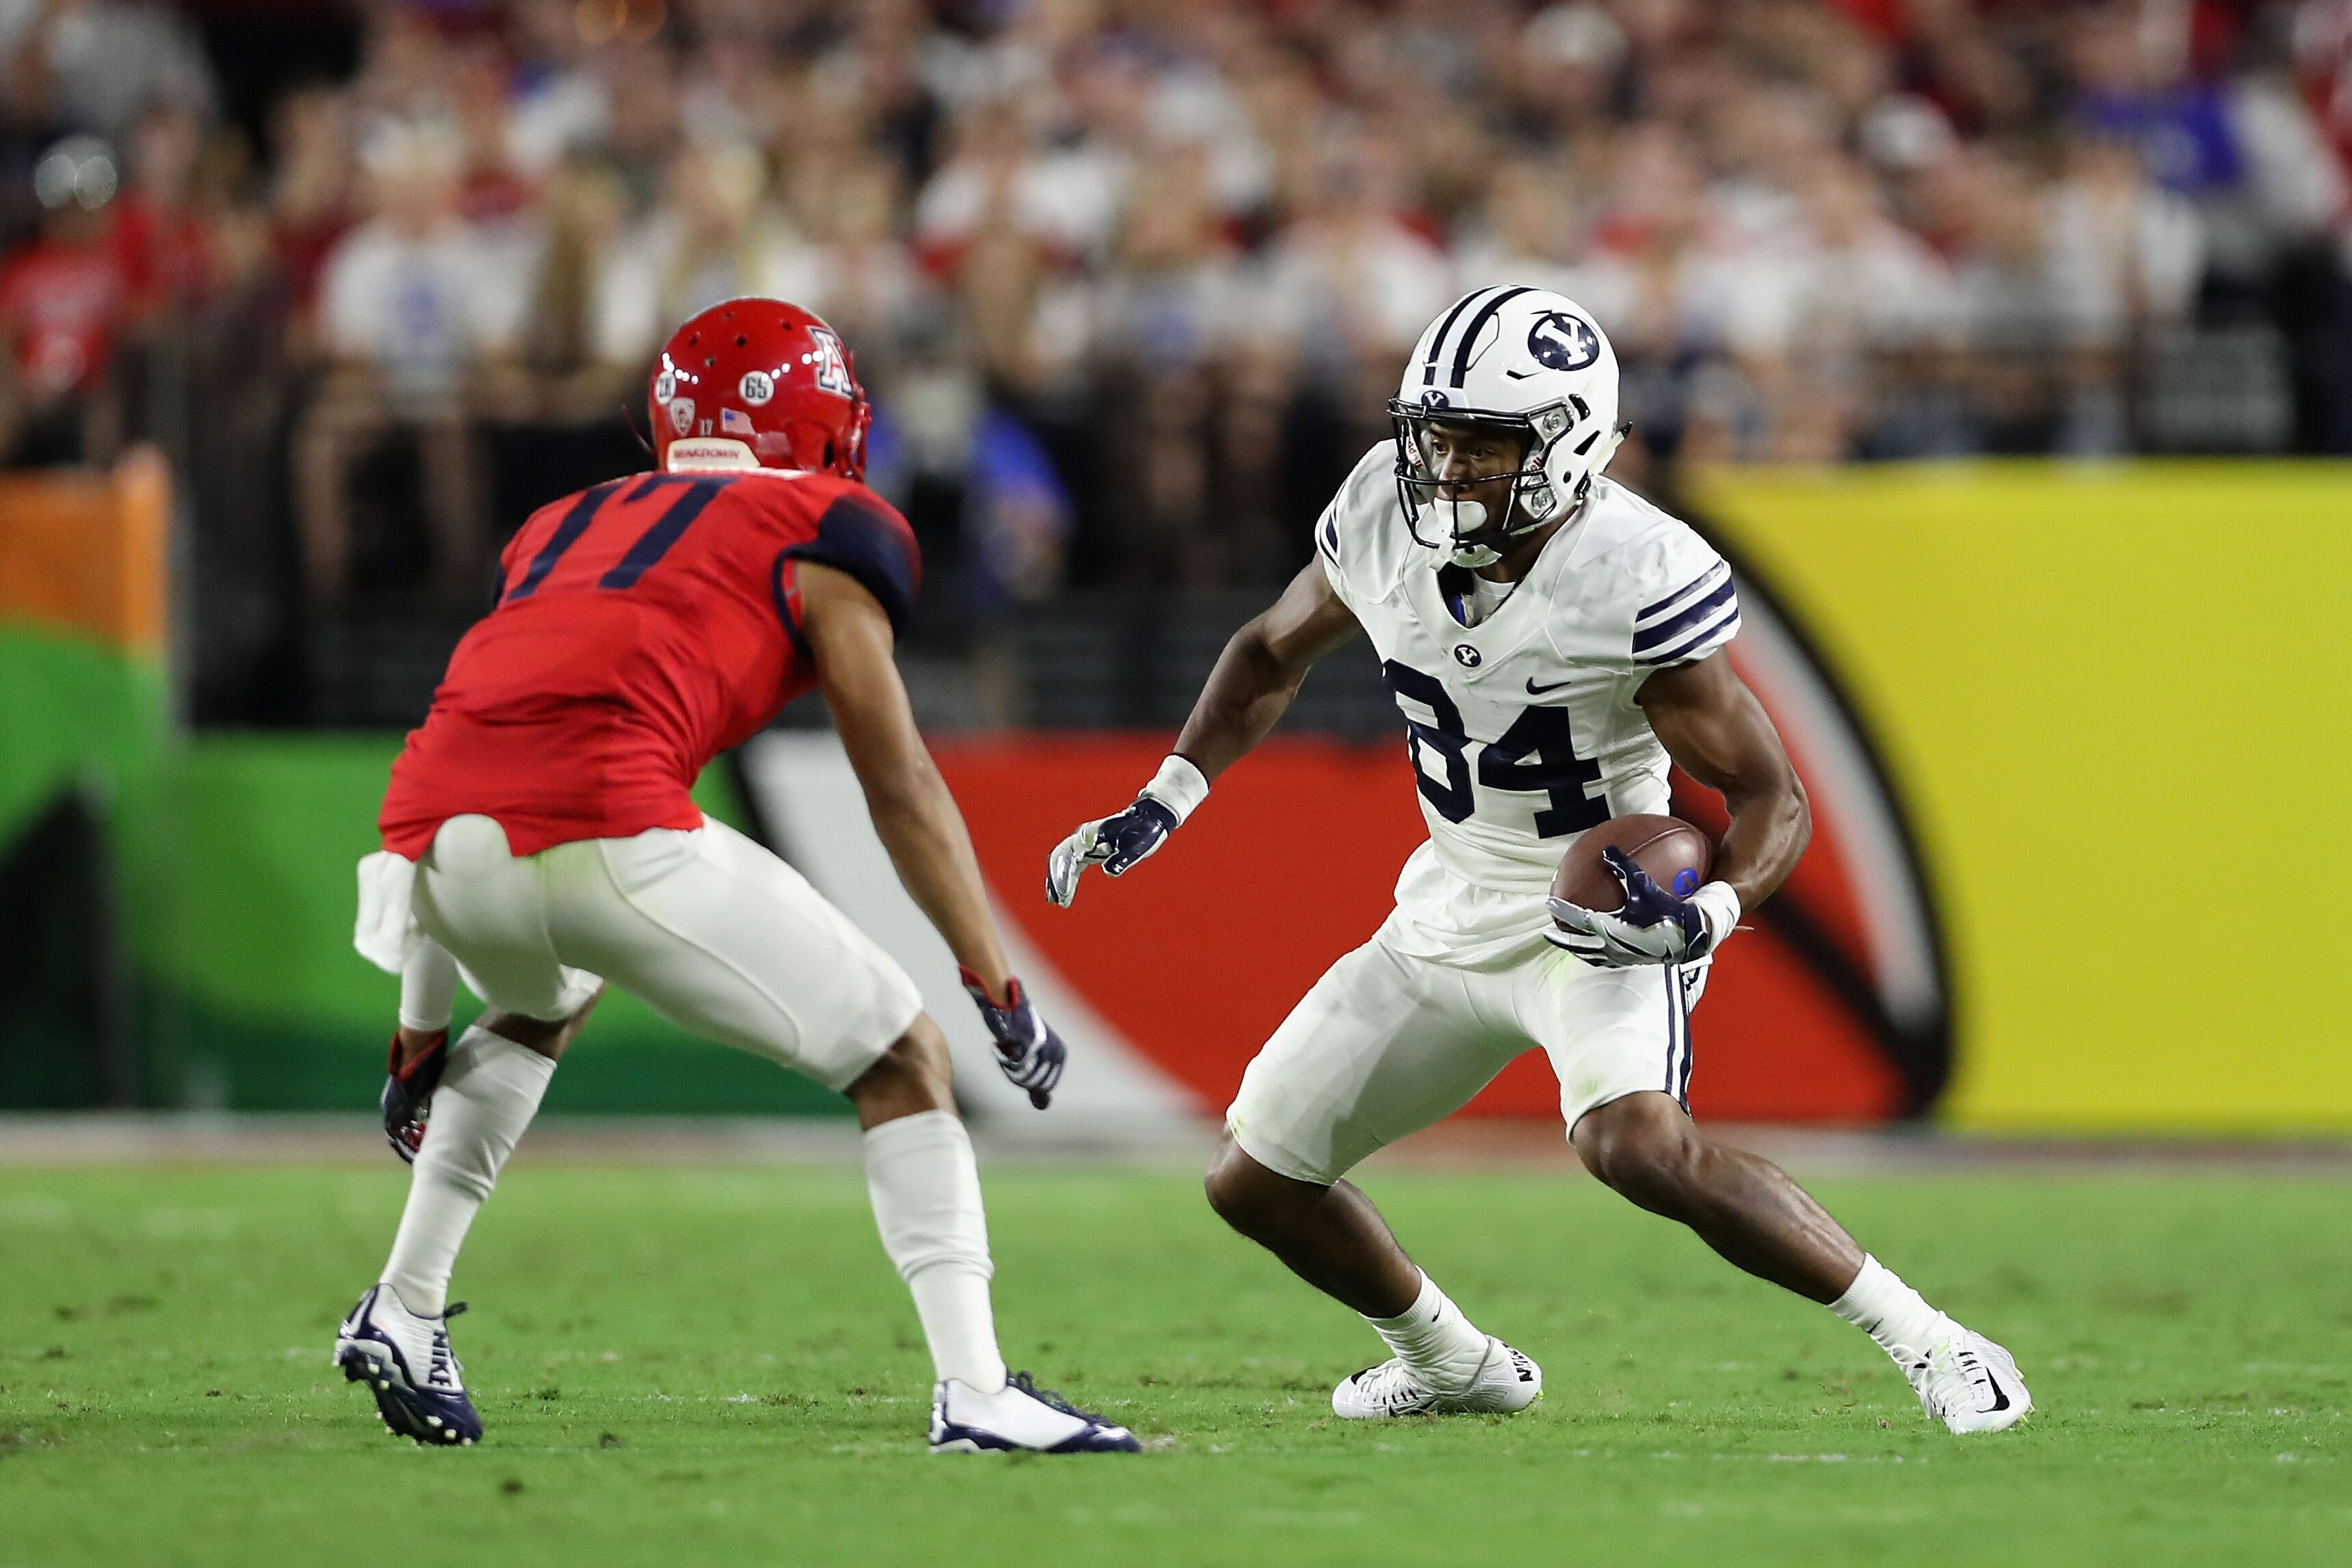 BYU football: Five questions for Cougars vs Portland State